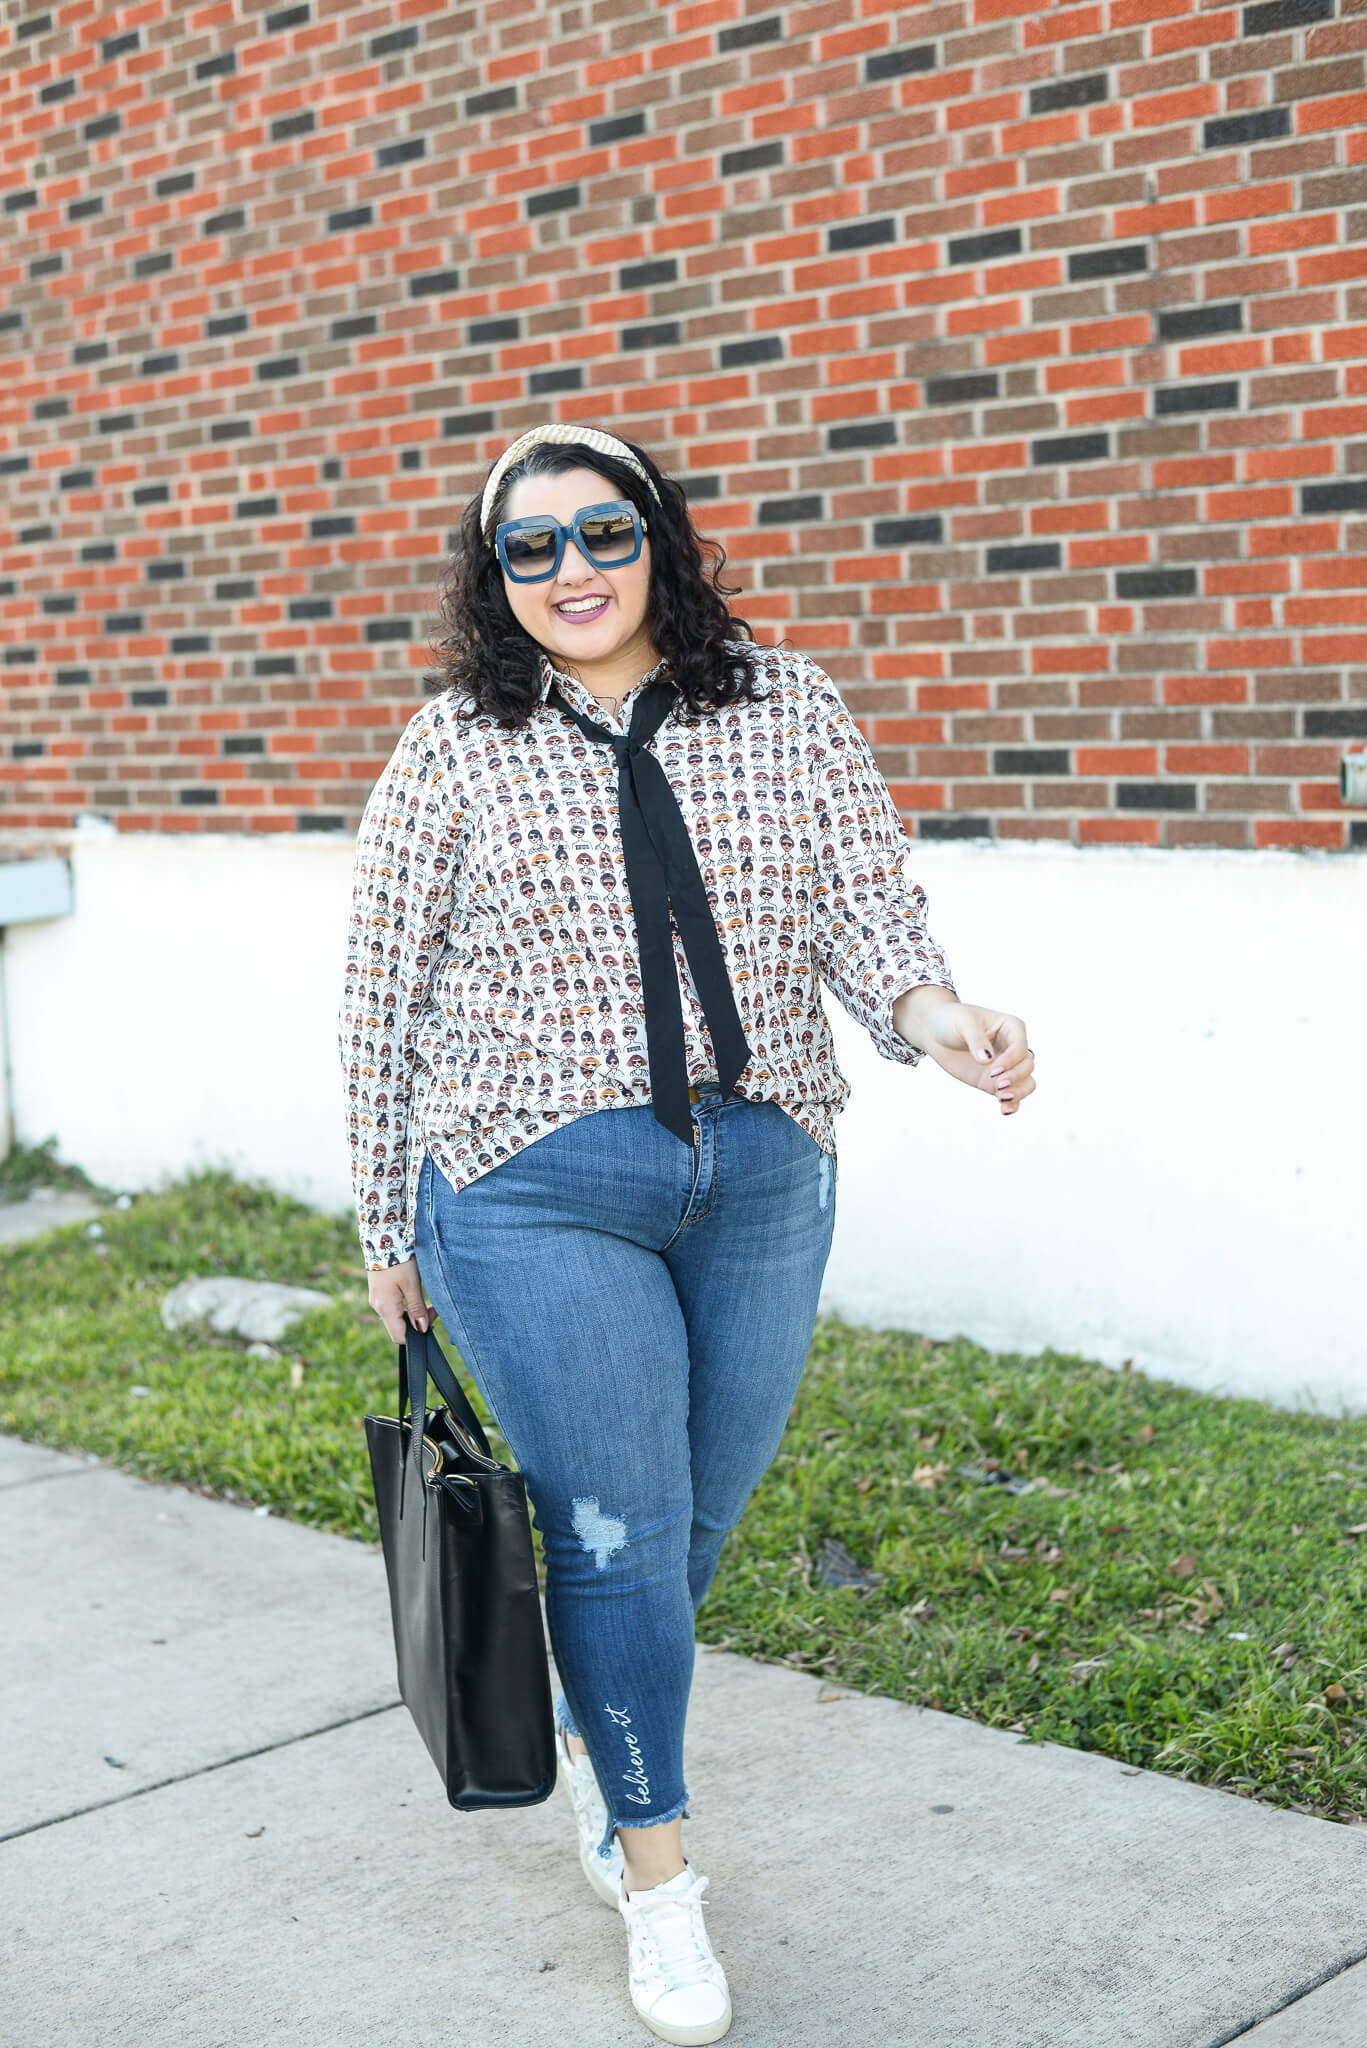 Running around town doesn't have to be boring when you have this plus size statement blouse in your closet!